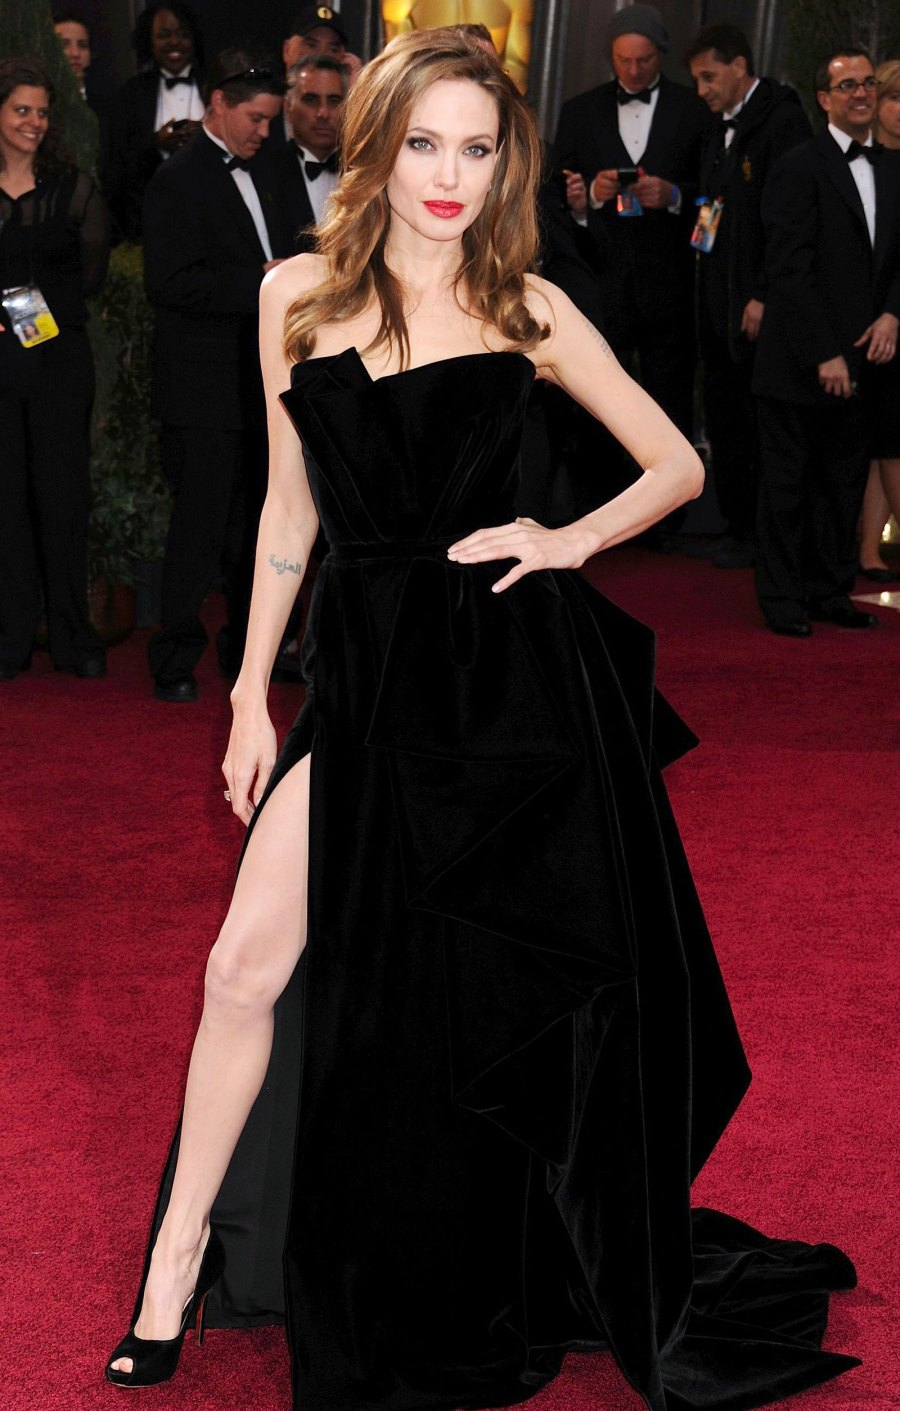 Most Stylish Moments of the Decade - Angelina Jolie's Leg Post at the 2012 Oscars